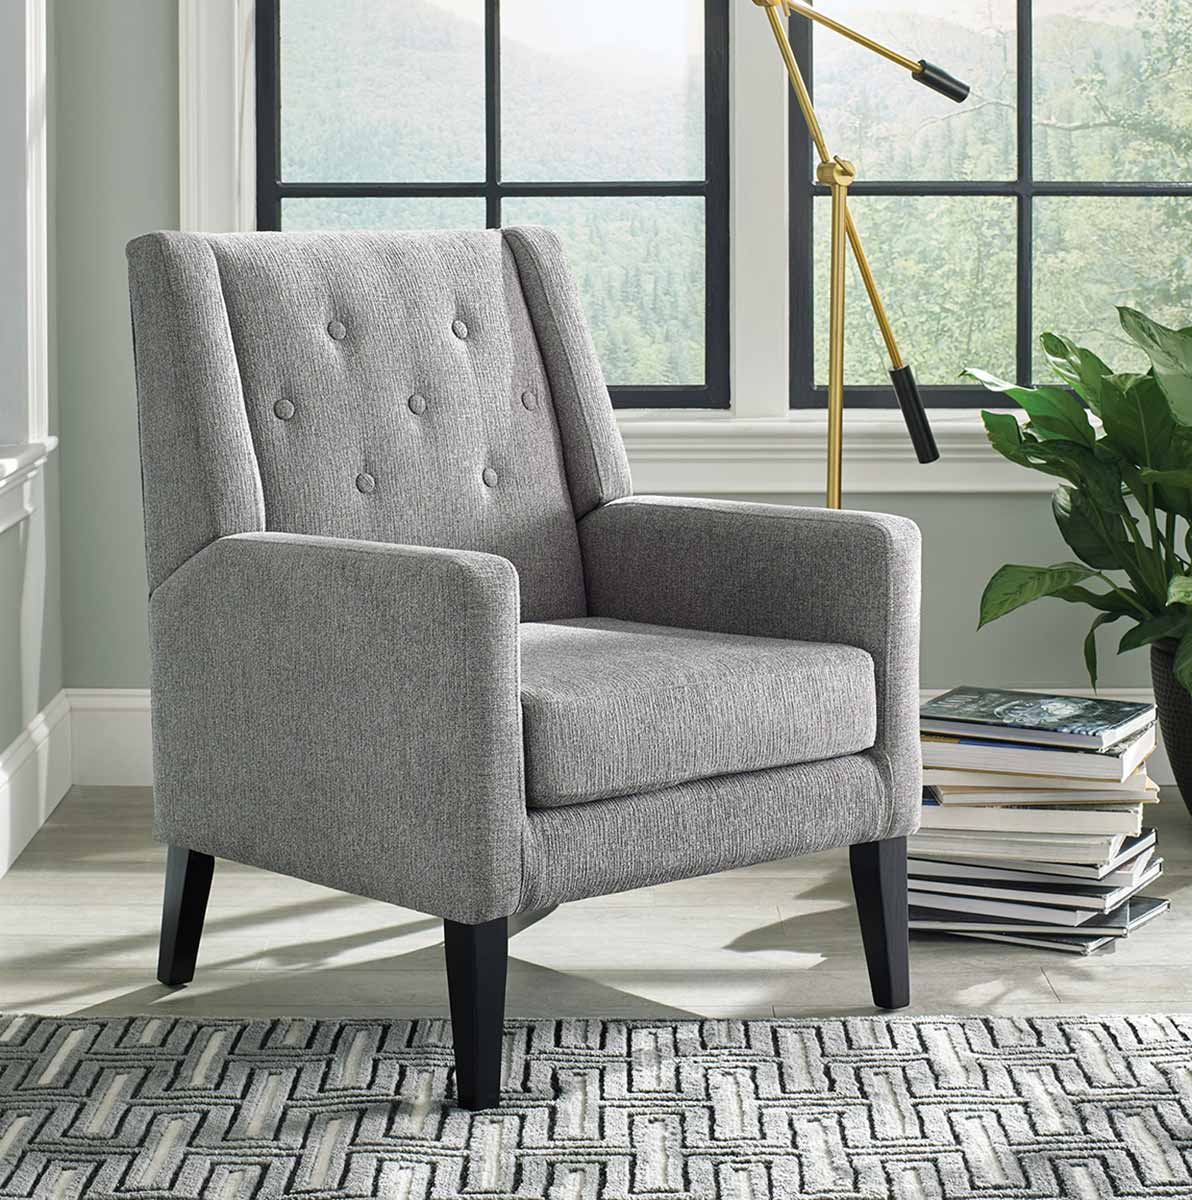 Coaster 903379 Accent Chair - Taupe/Black